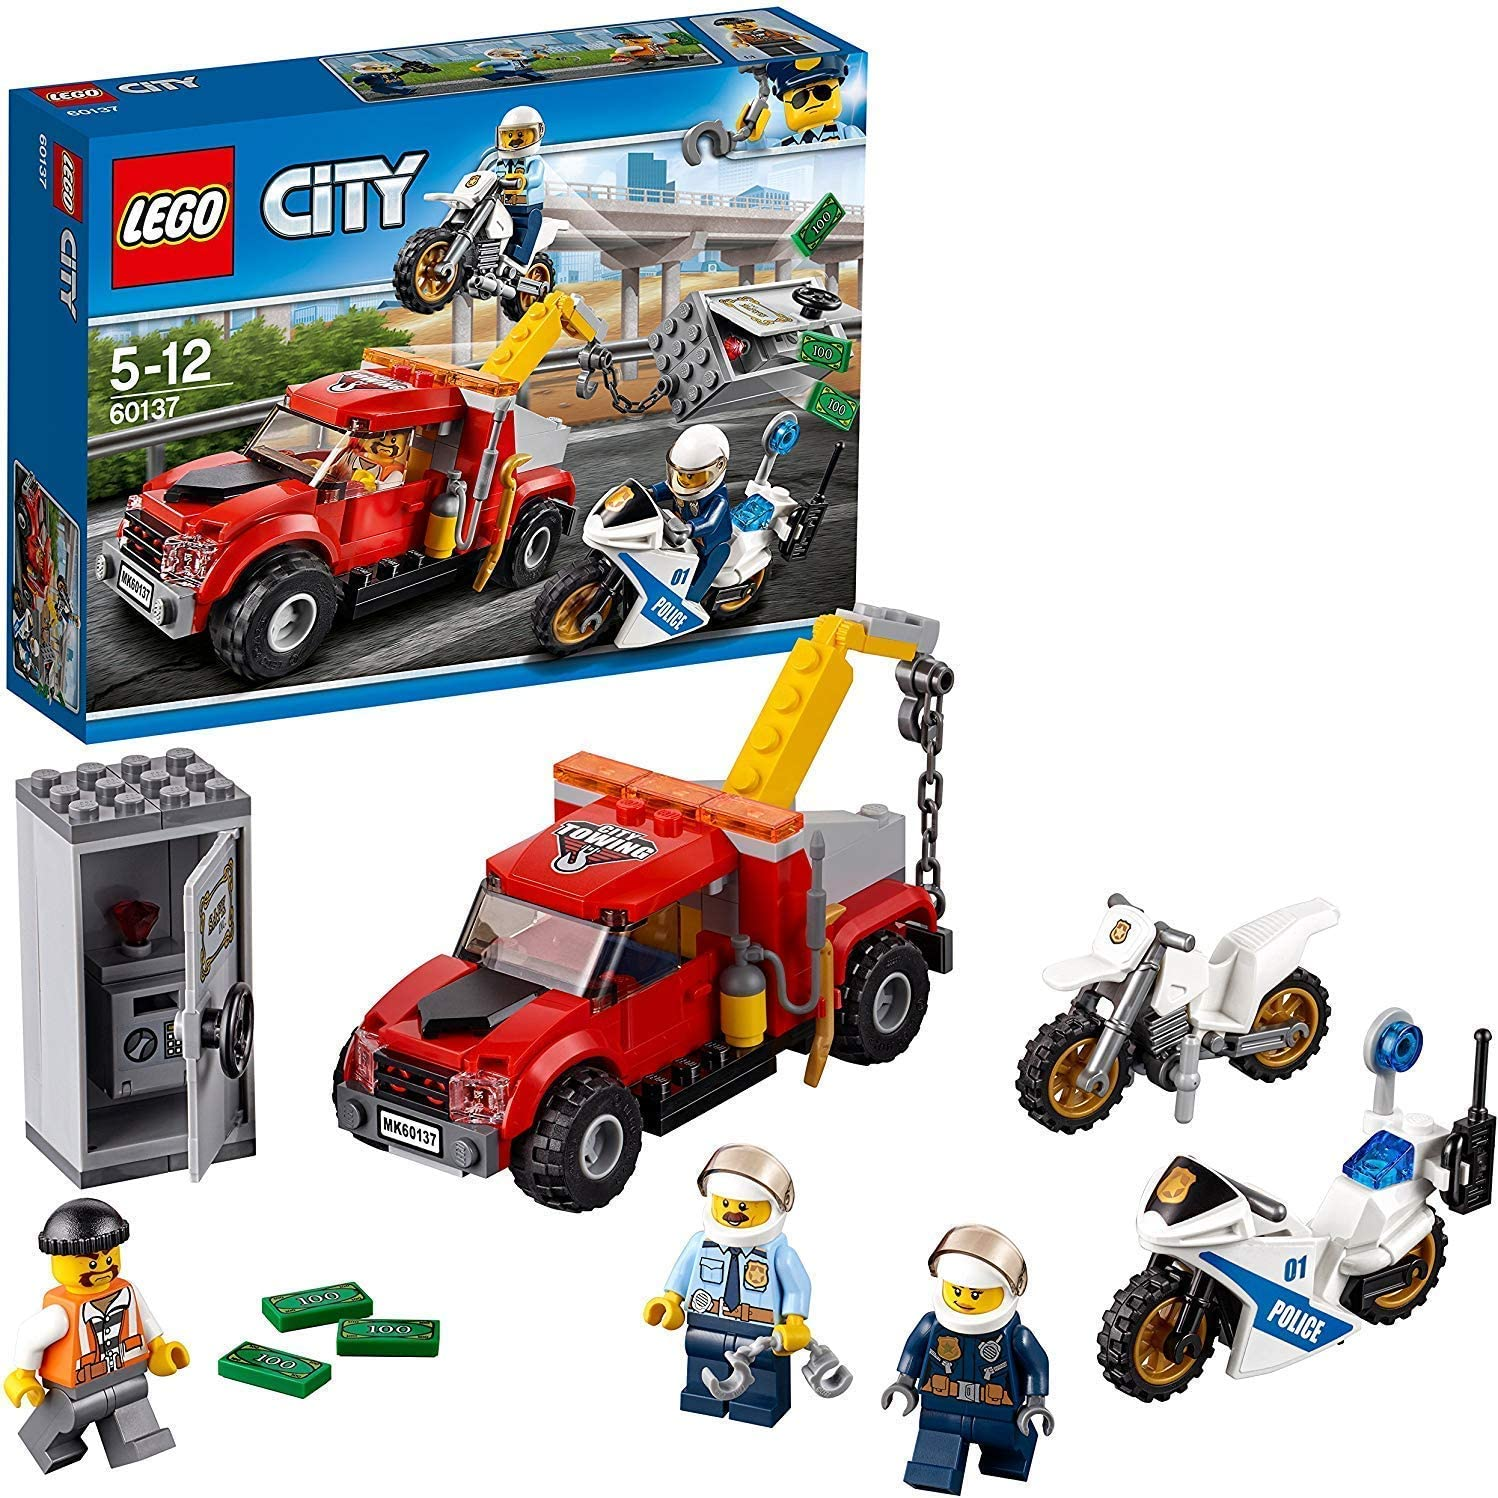 LEGO City Police Tow Truck Trouble Building Toy